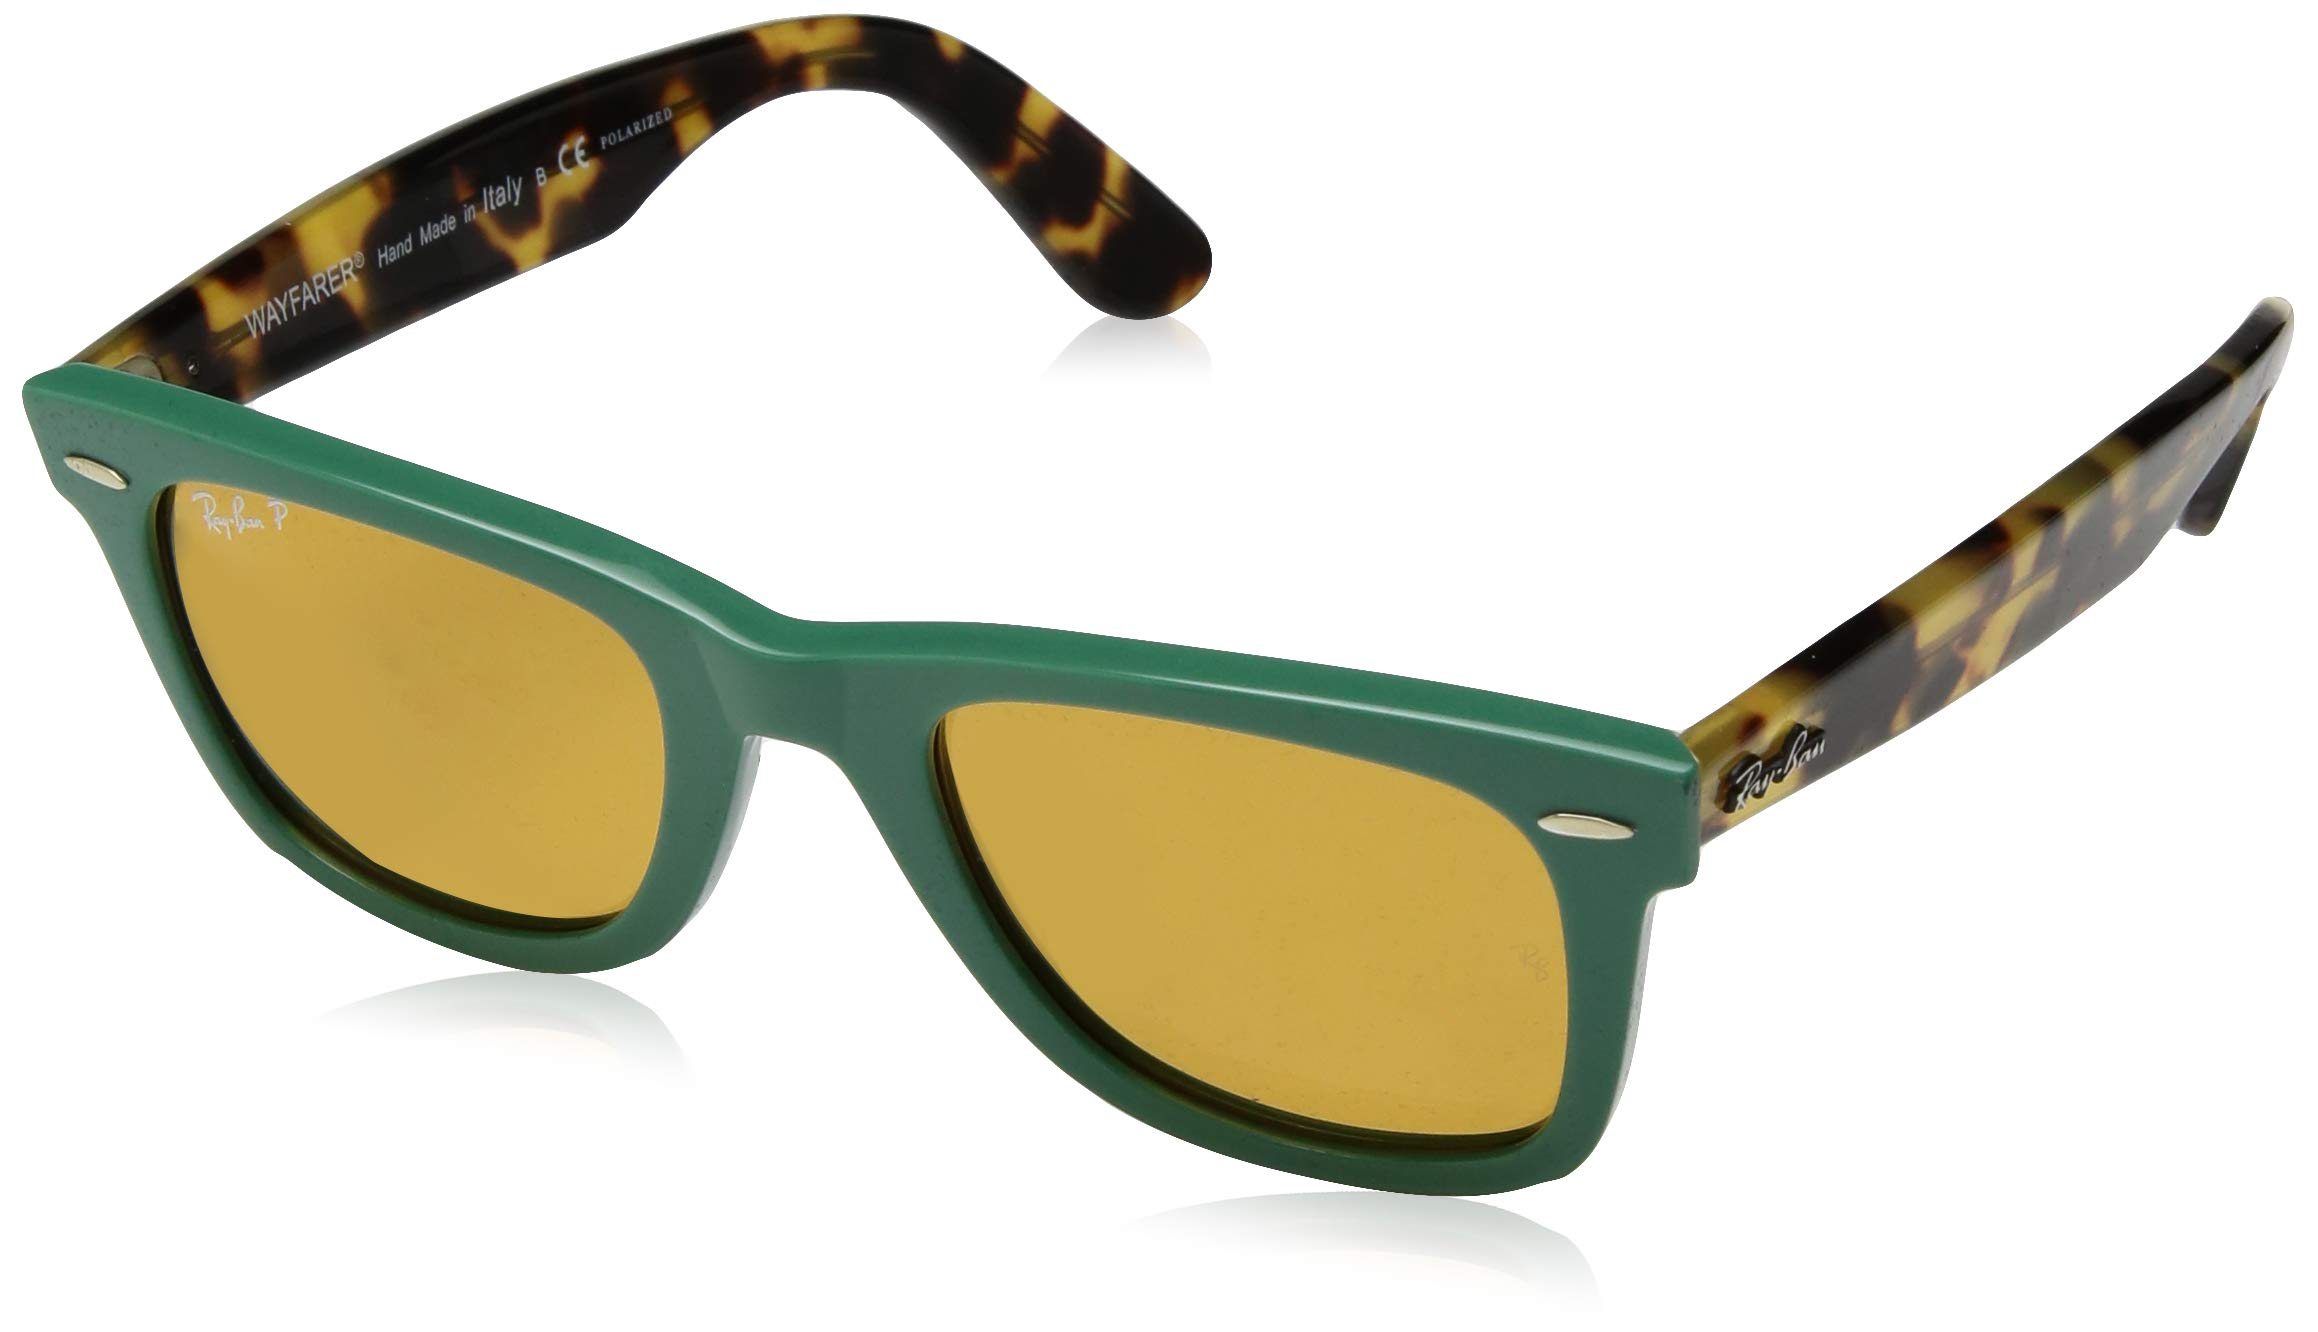 Ray-Ban RB2140 Wayfarer Sunglasses, Green/Polarized Yellow, 50 mm by RAY-BAN